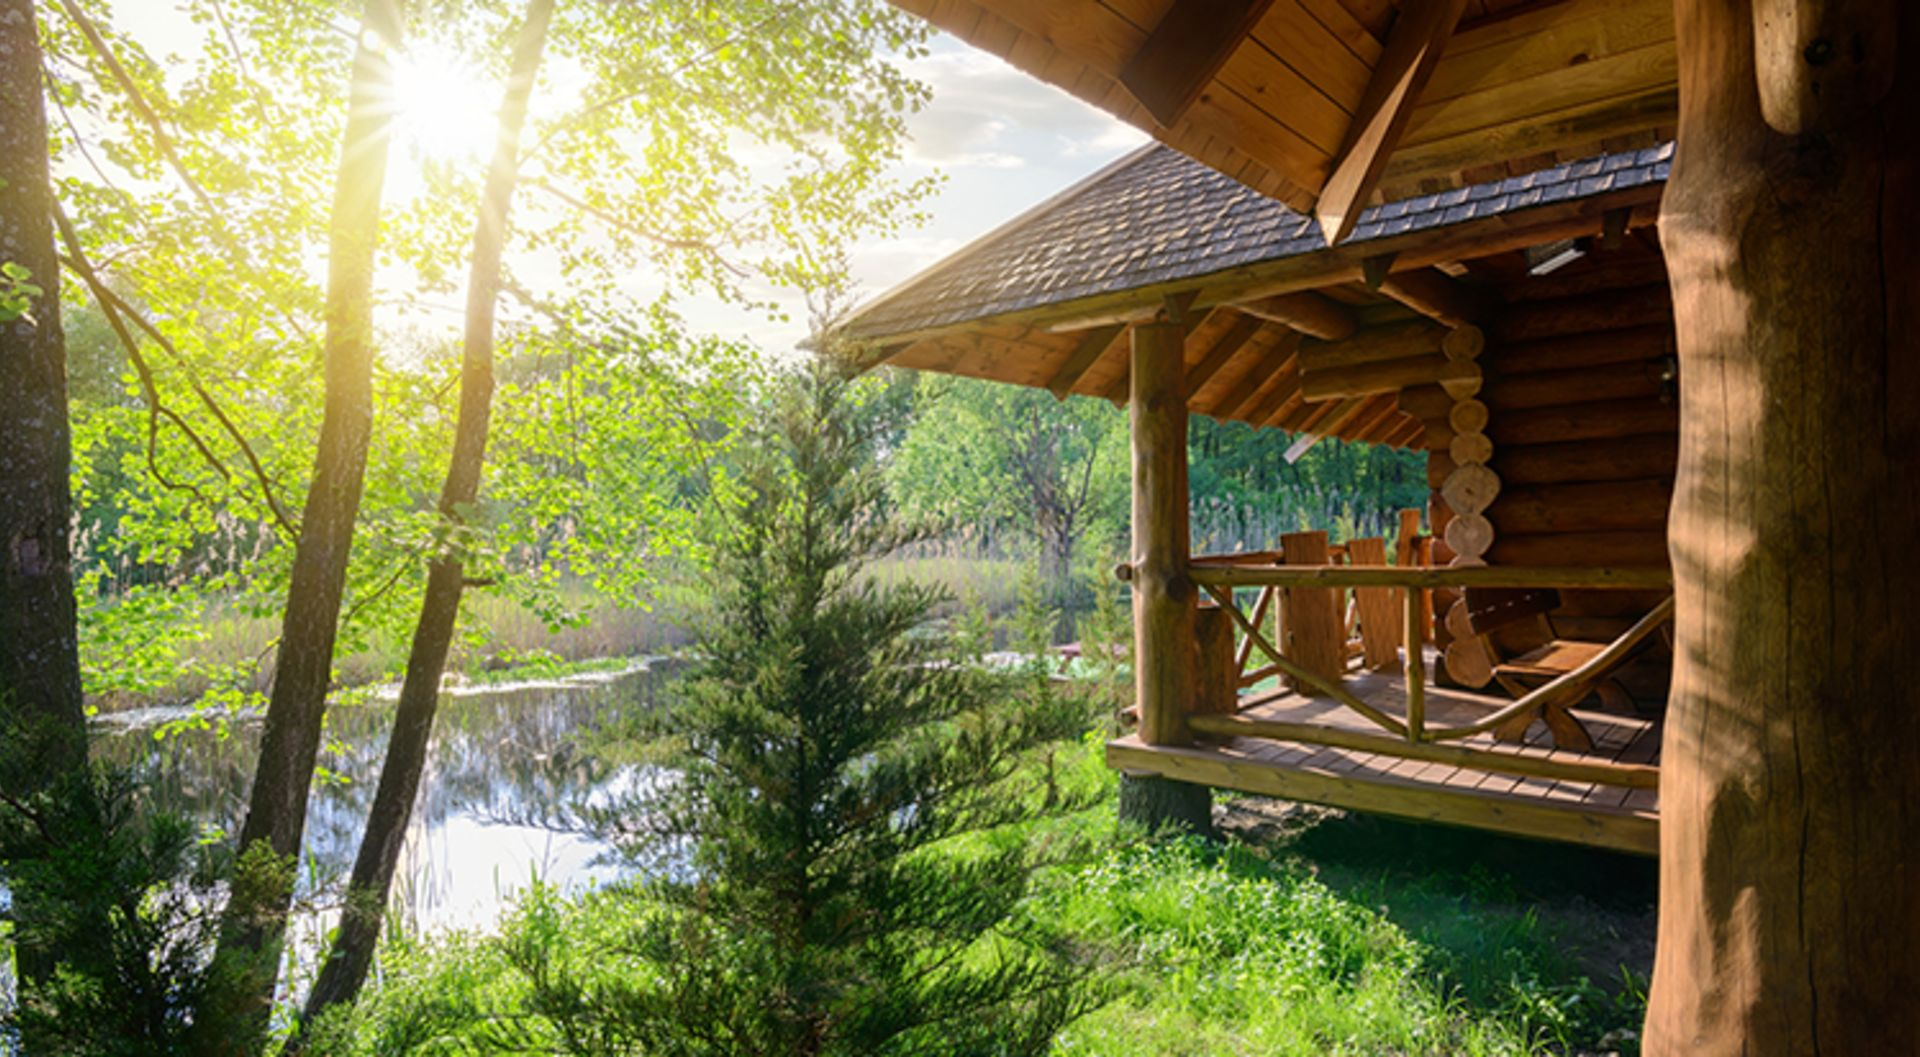 5 Things to Keep in Mind When Buying a Vacation Home